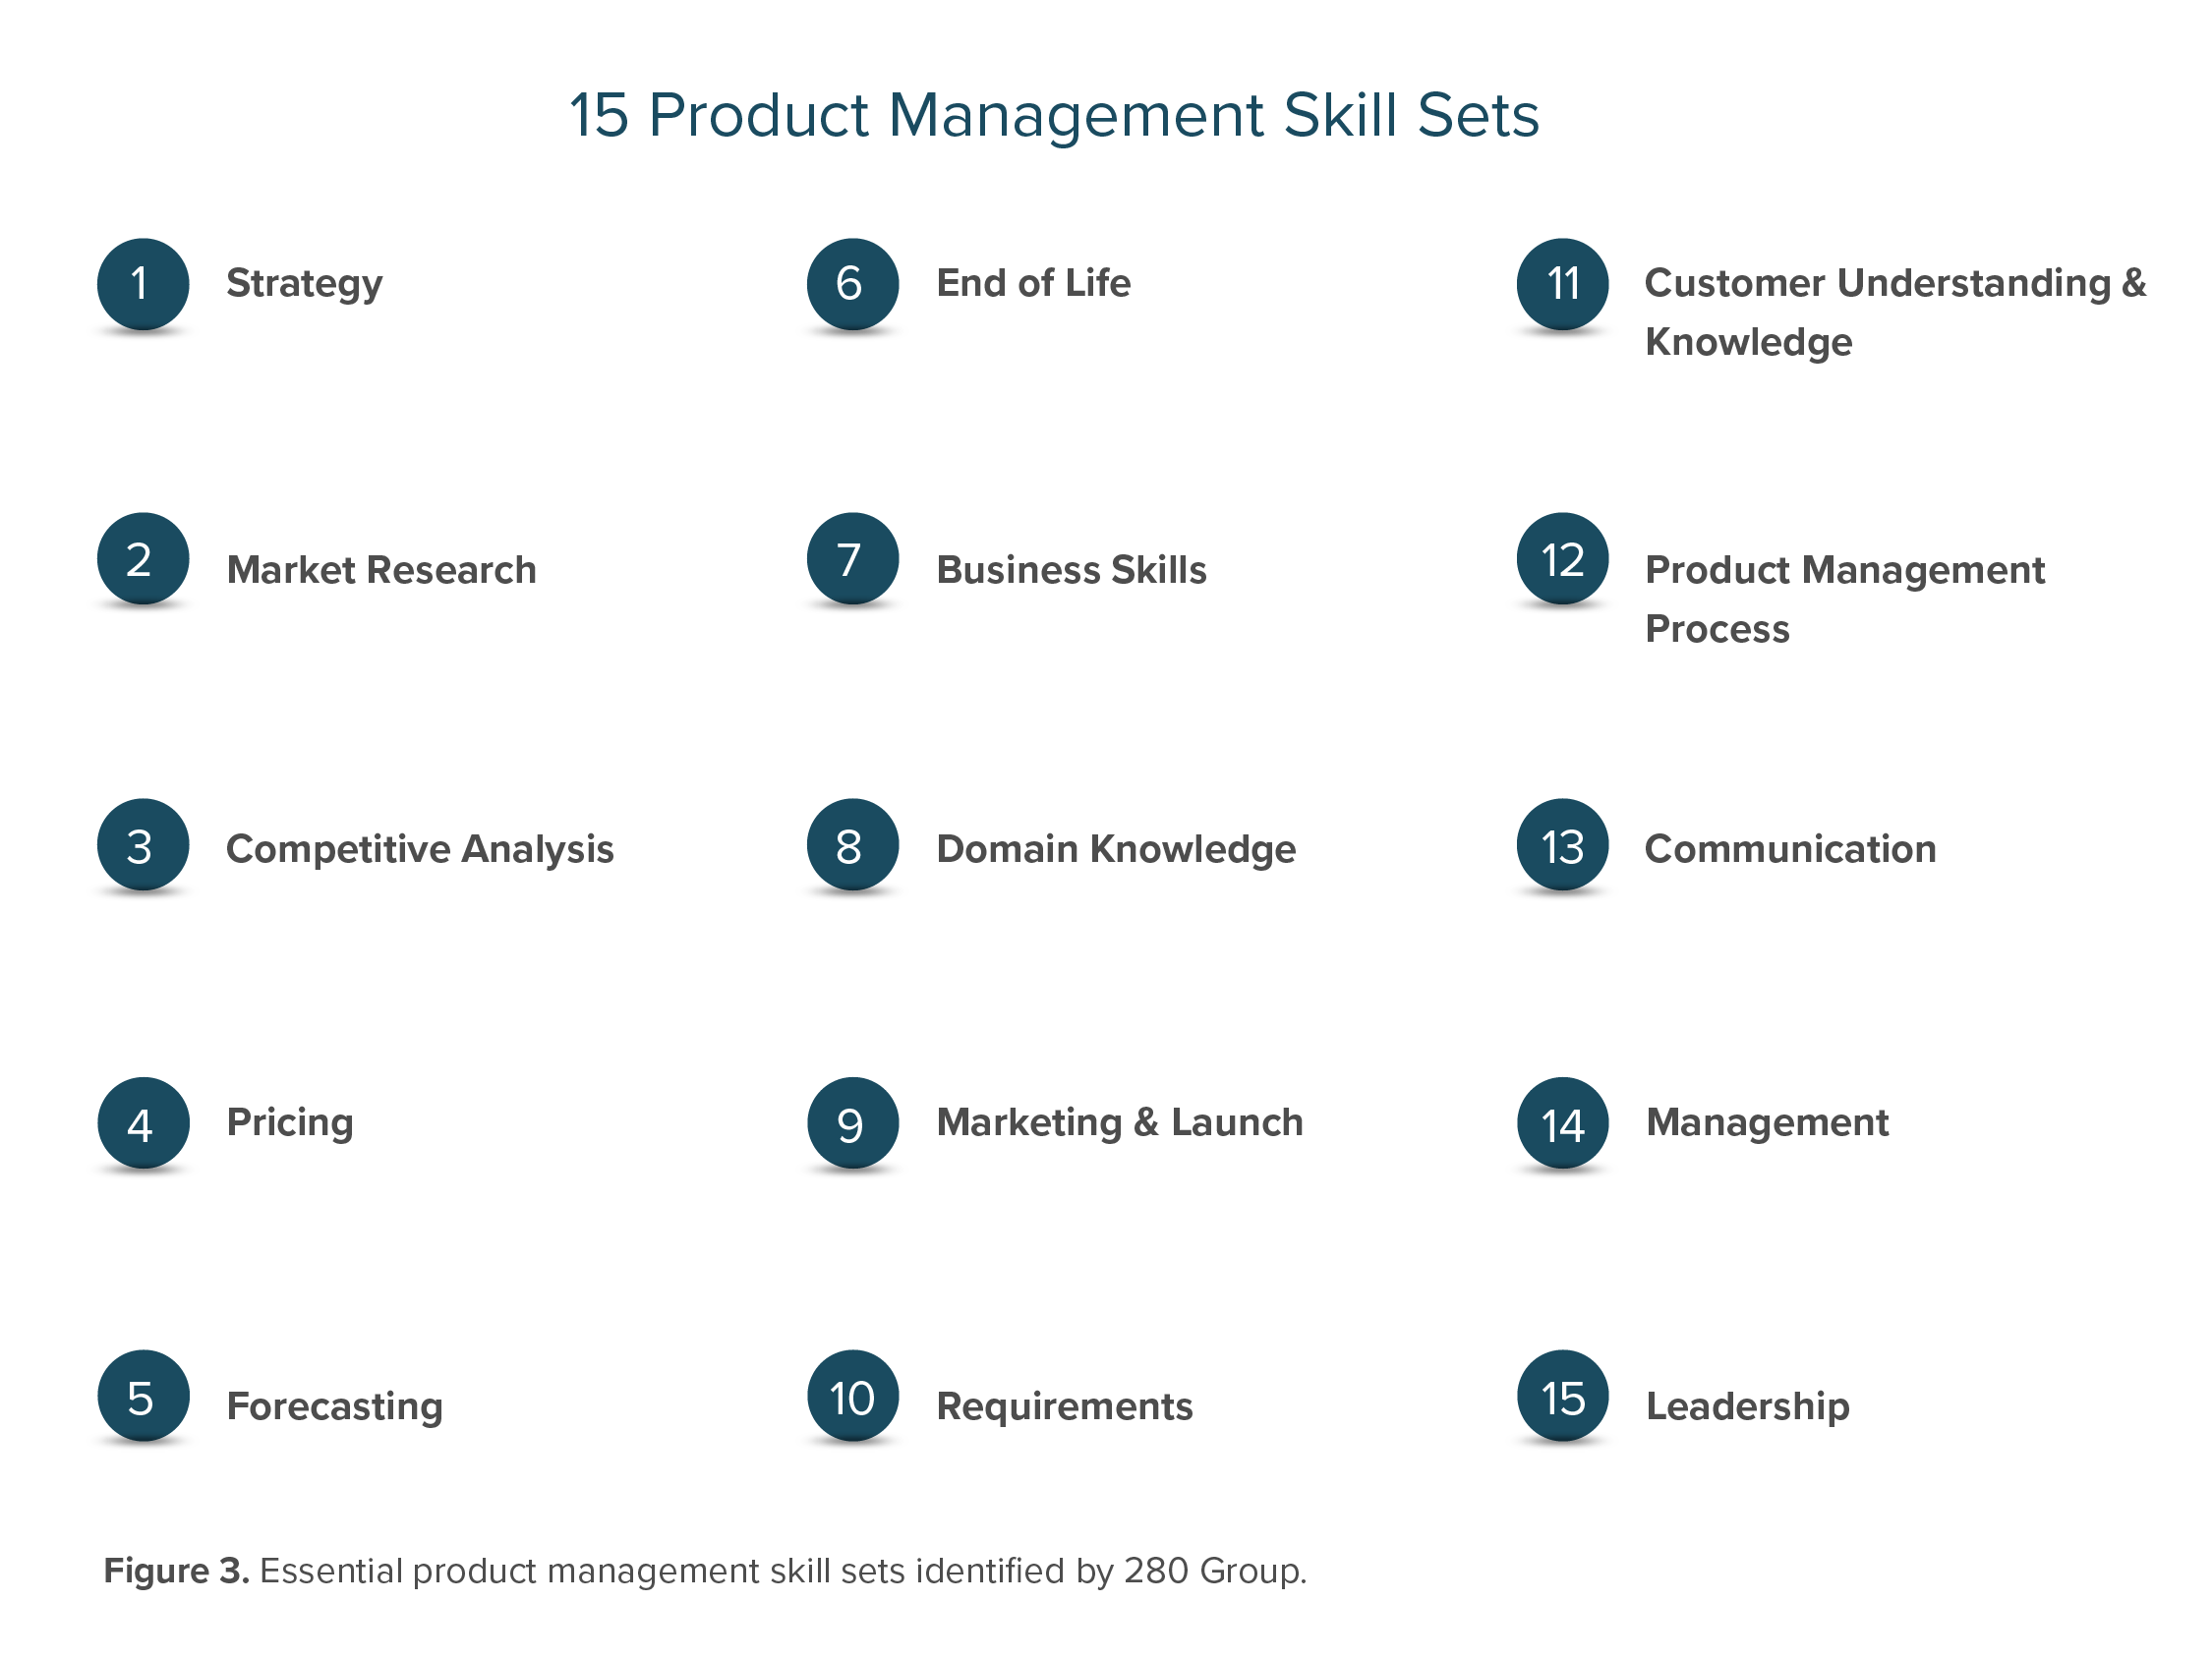 How to Assess Product Management Skills and Competencies